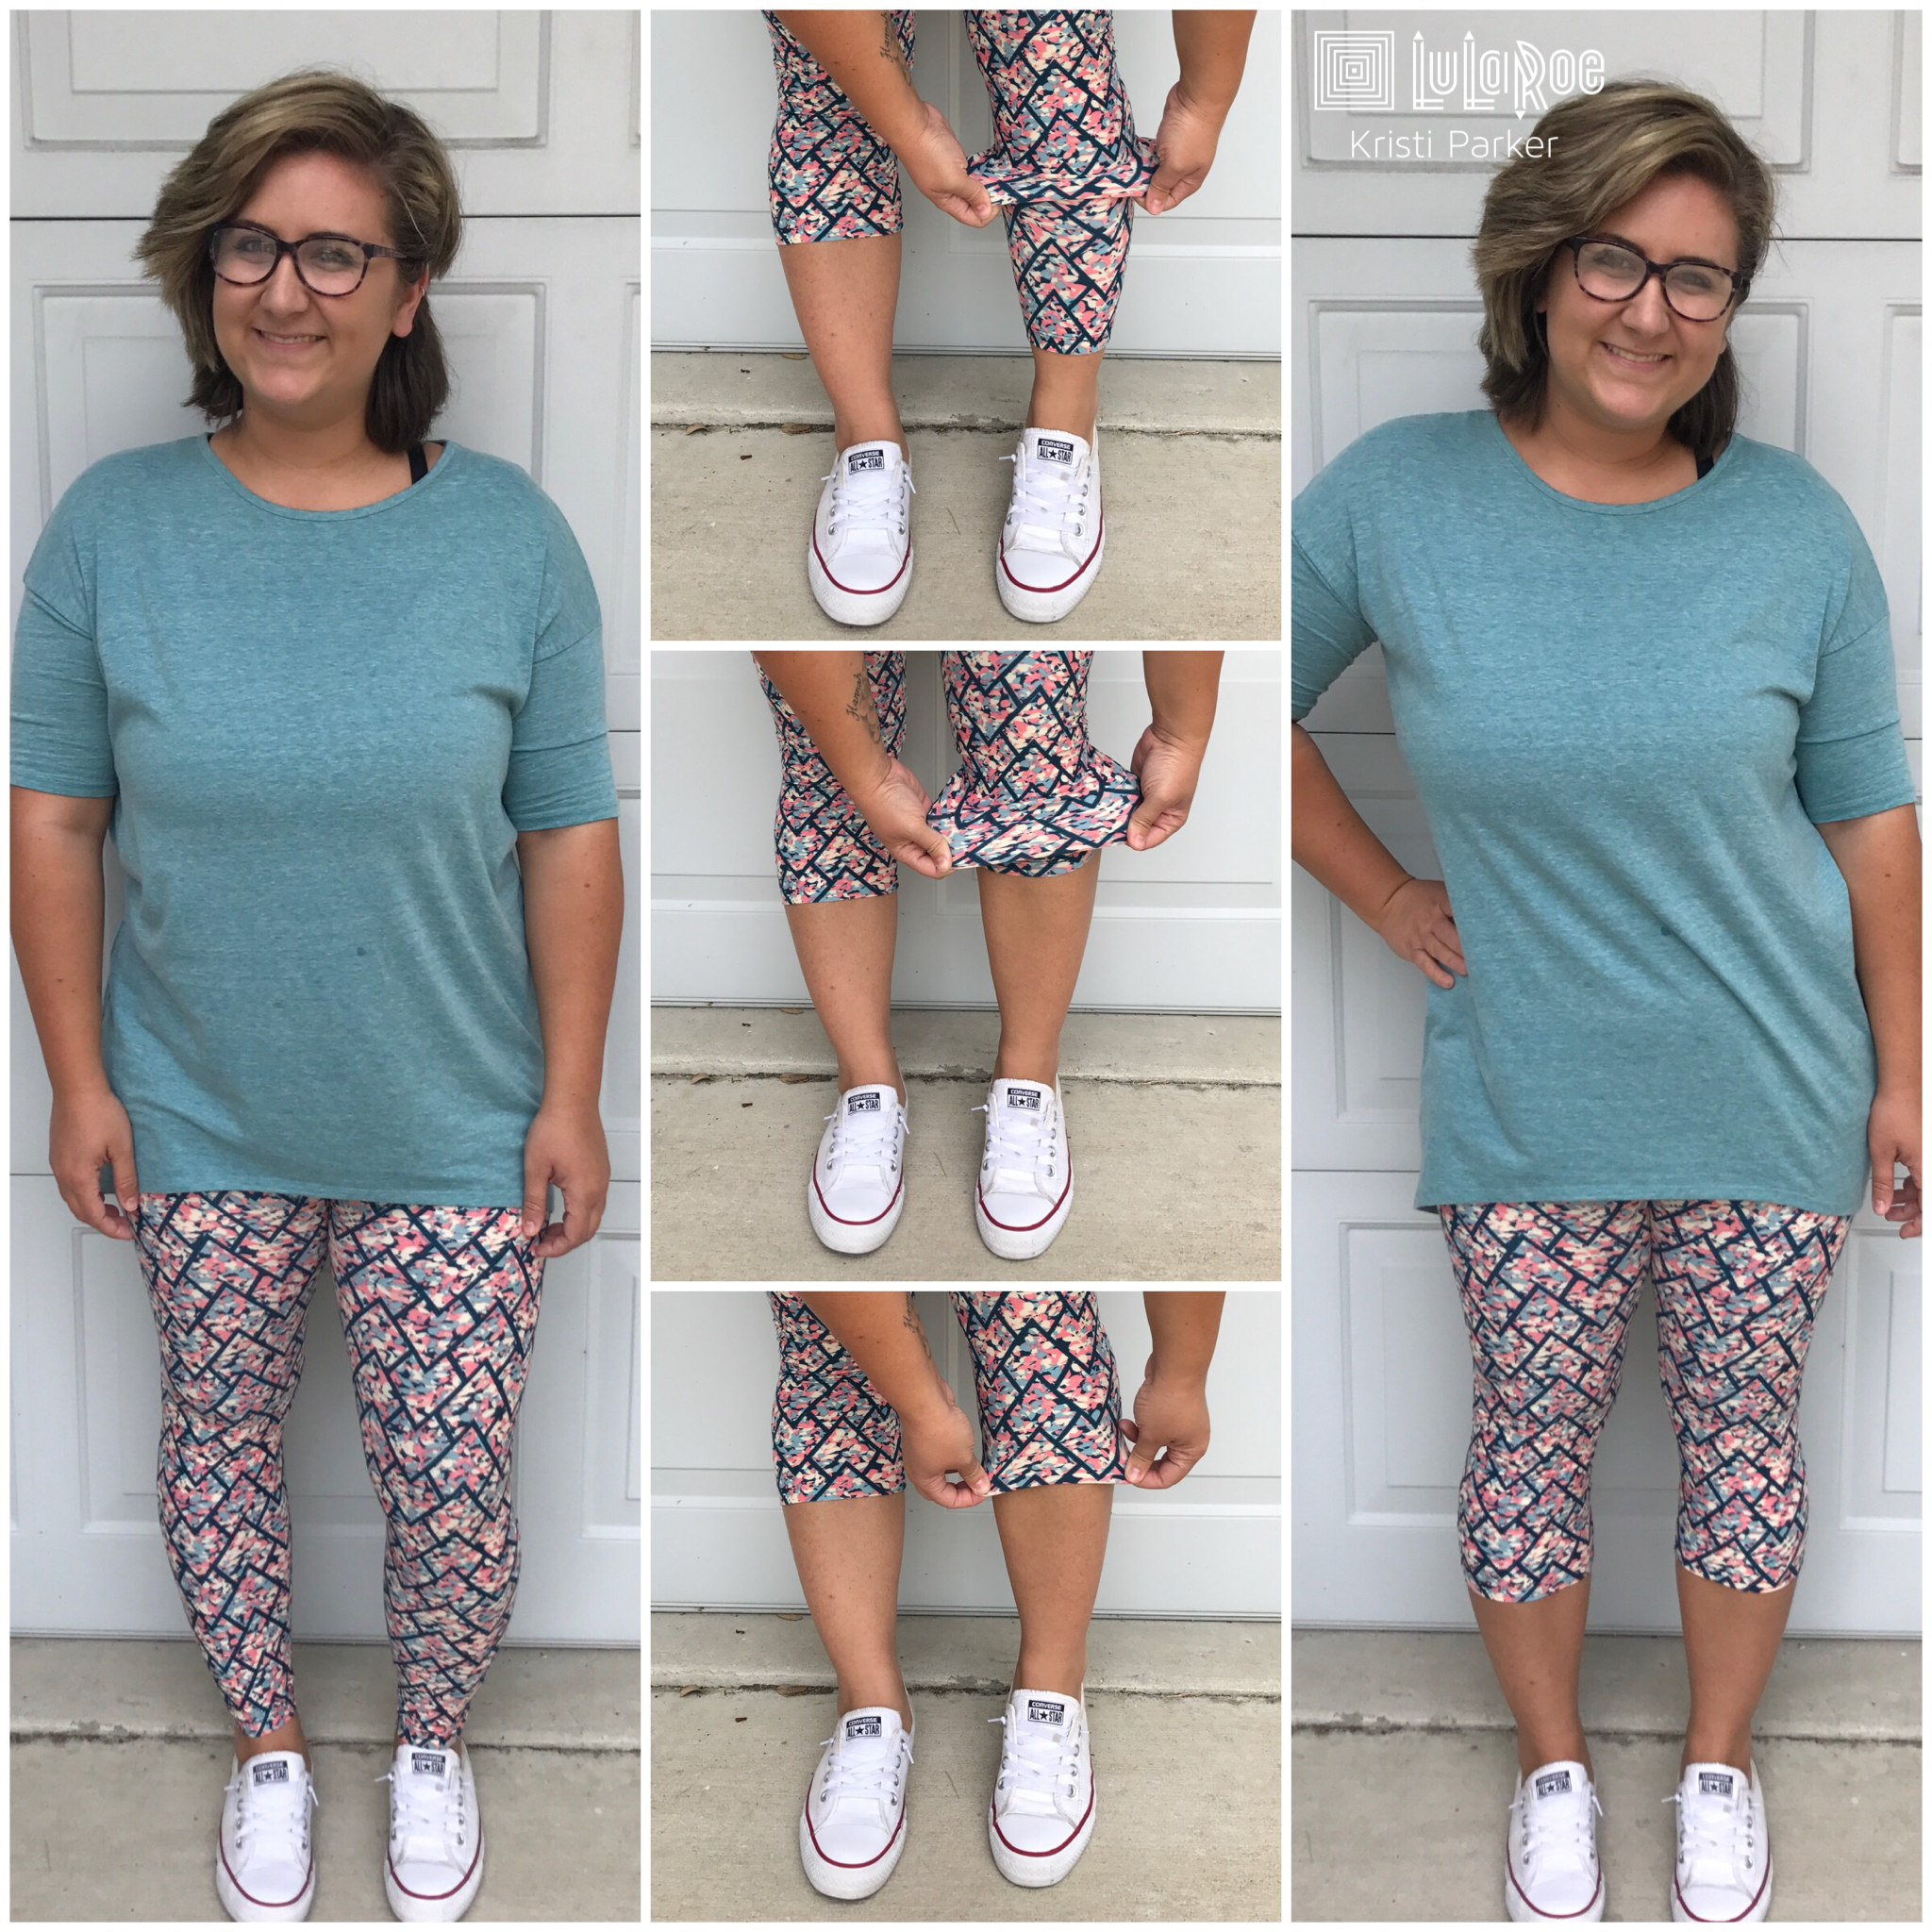 66c3ddada9 Make your LuLaRoe leggings into capris! A great way to wear them during the  hot summer months!